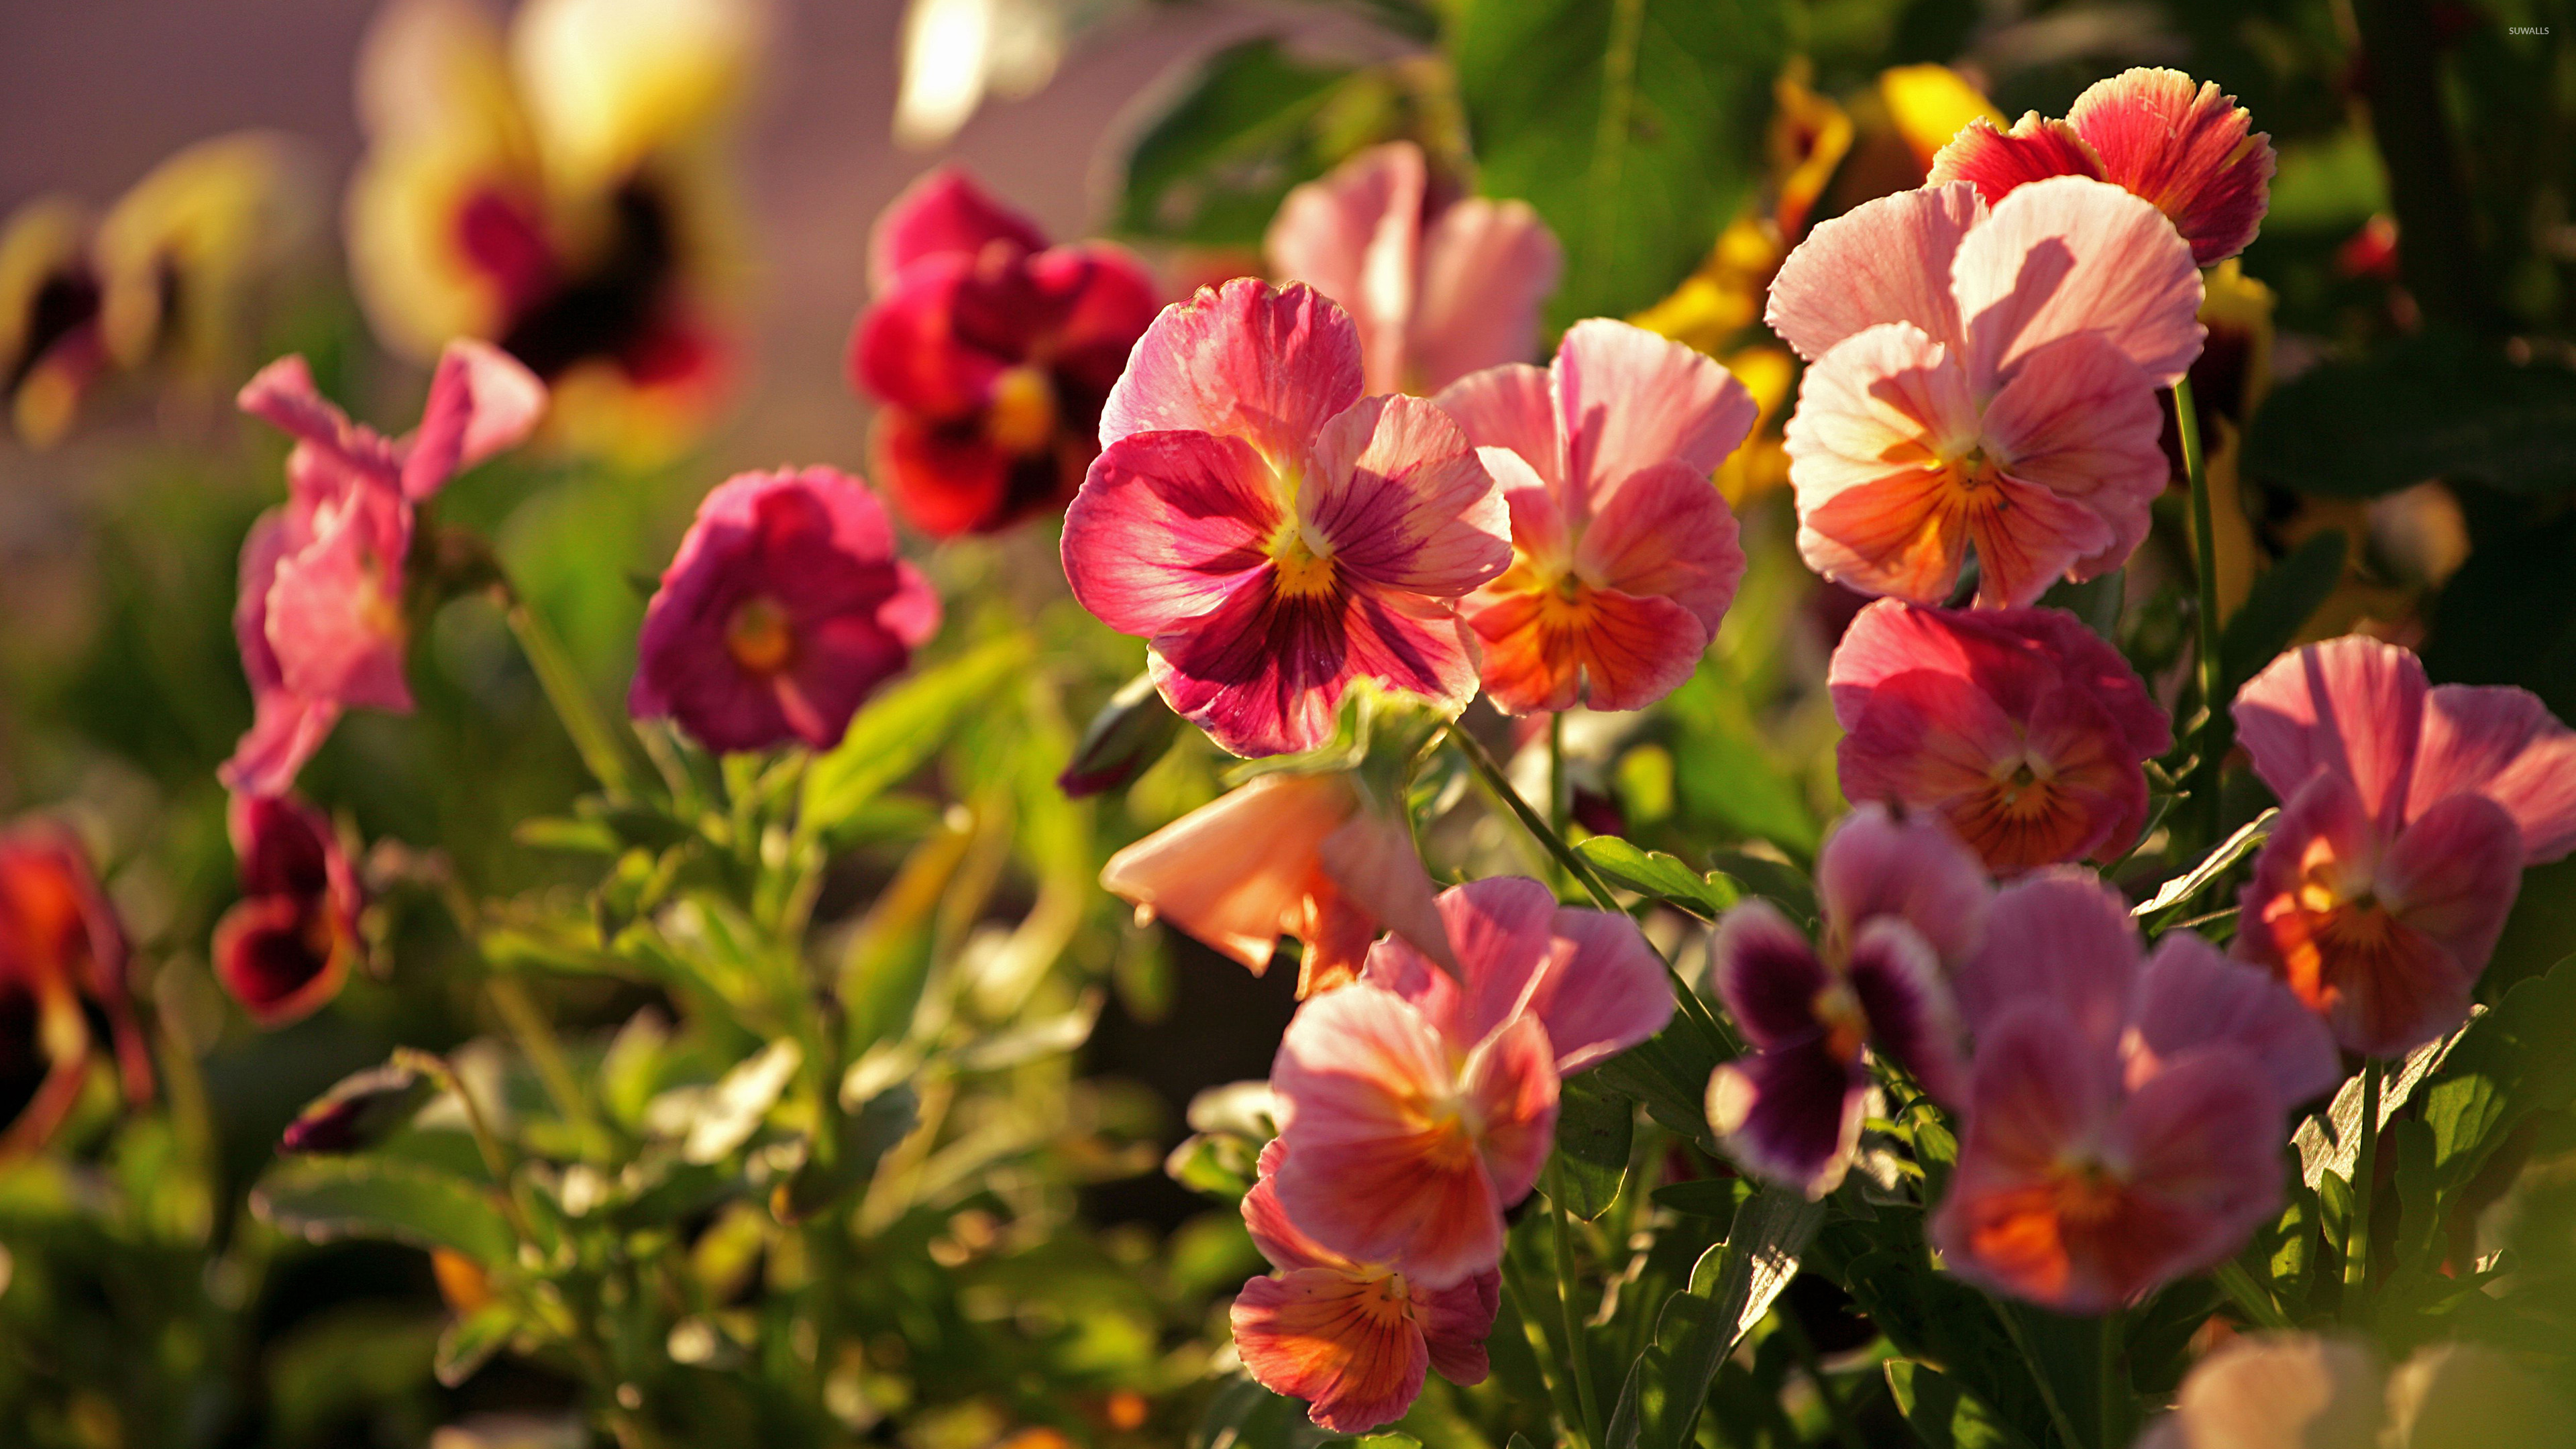 Pink pansies wallpaper flower wallpapers 39728 pink pansies wallpaper mightylinksfo Choice Image